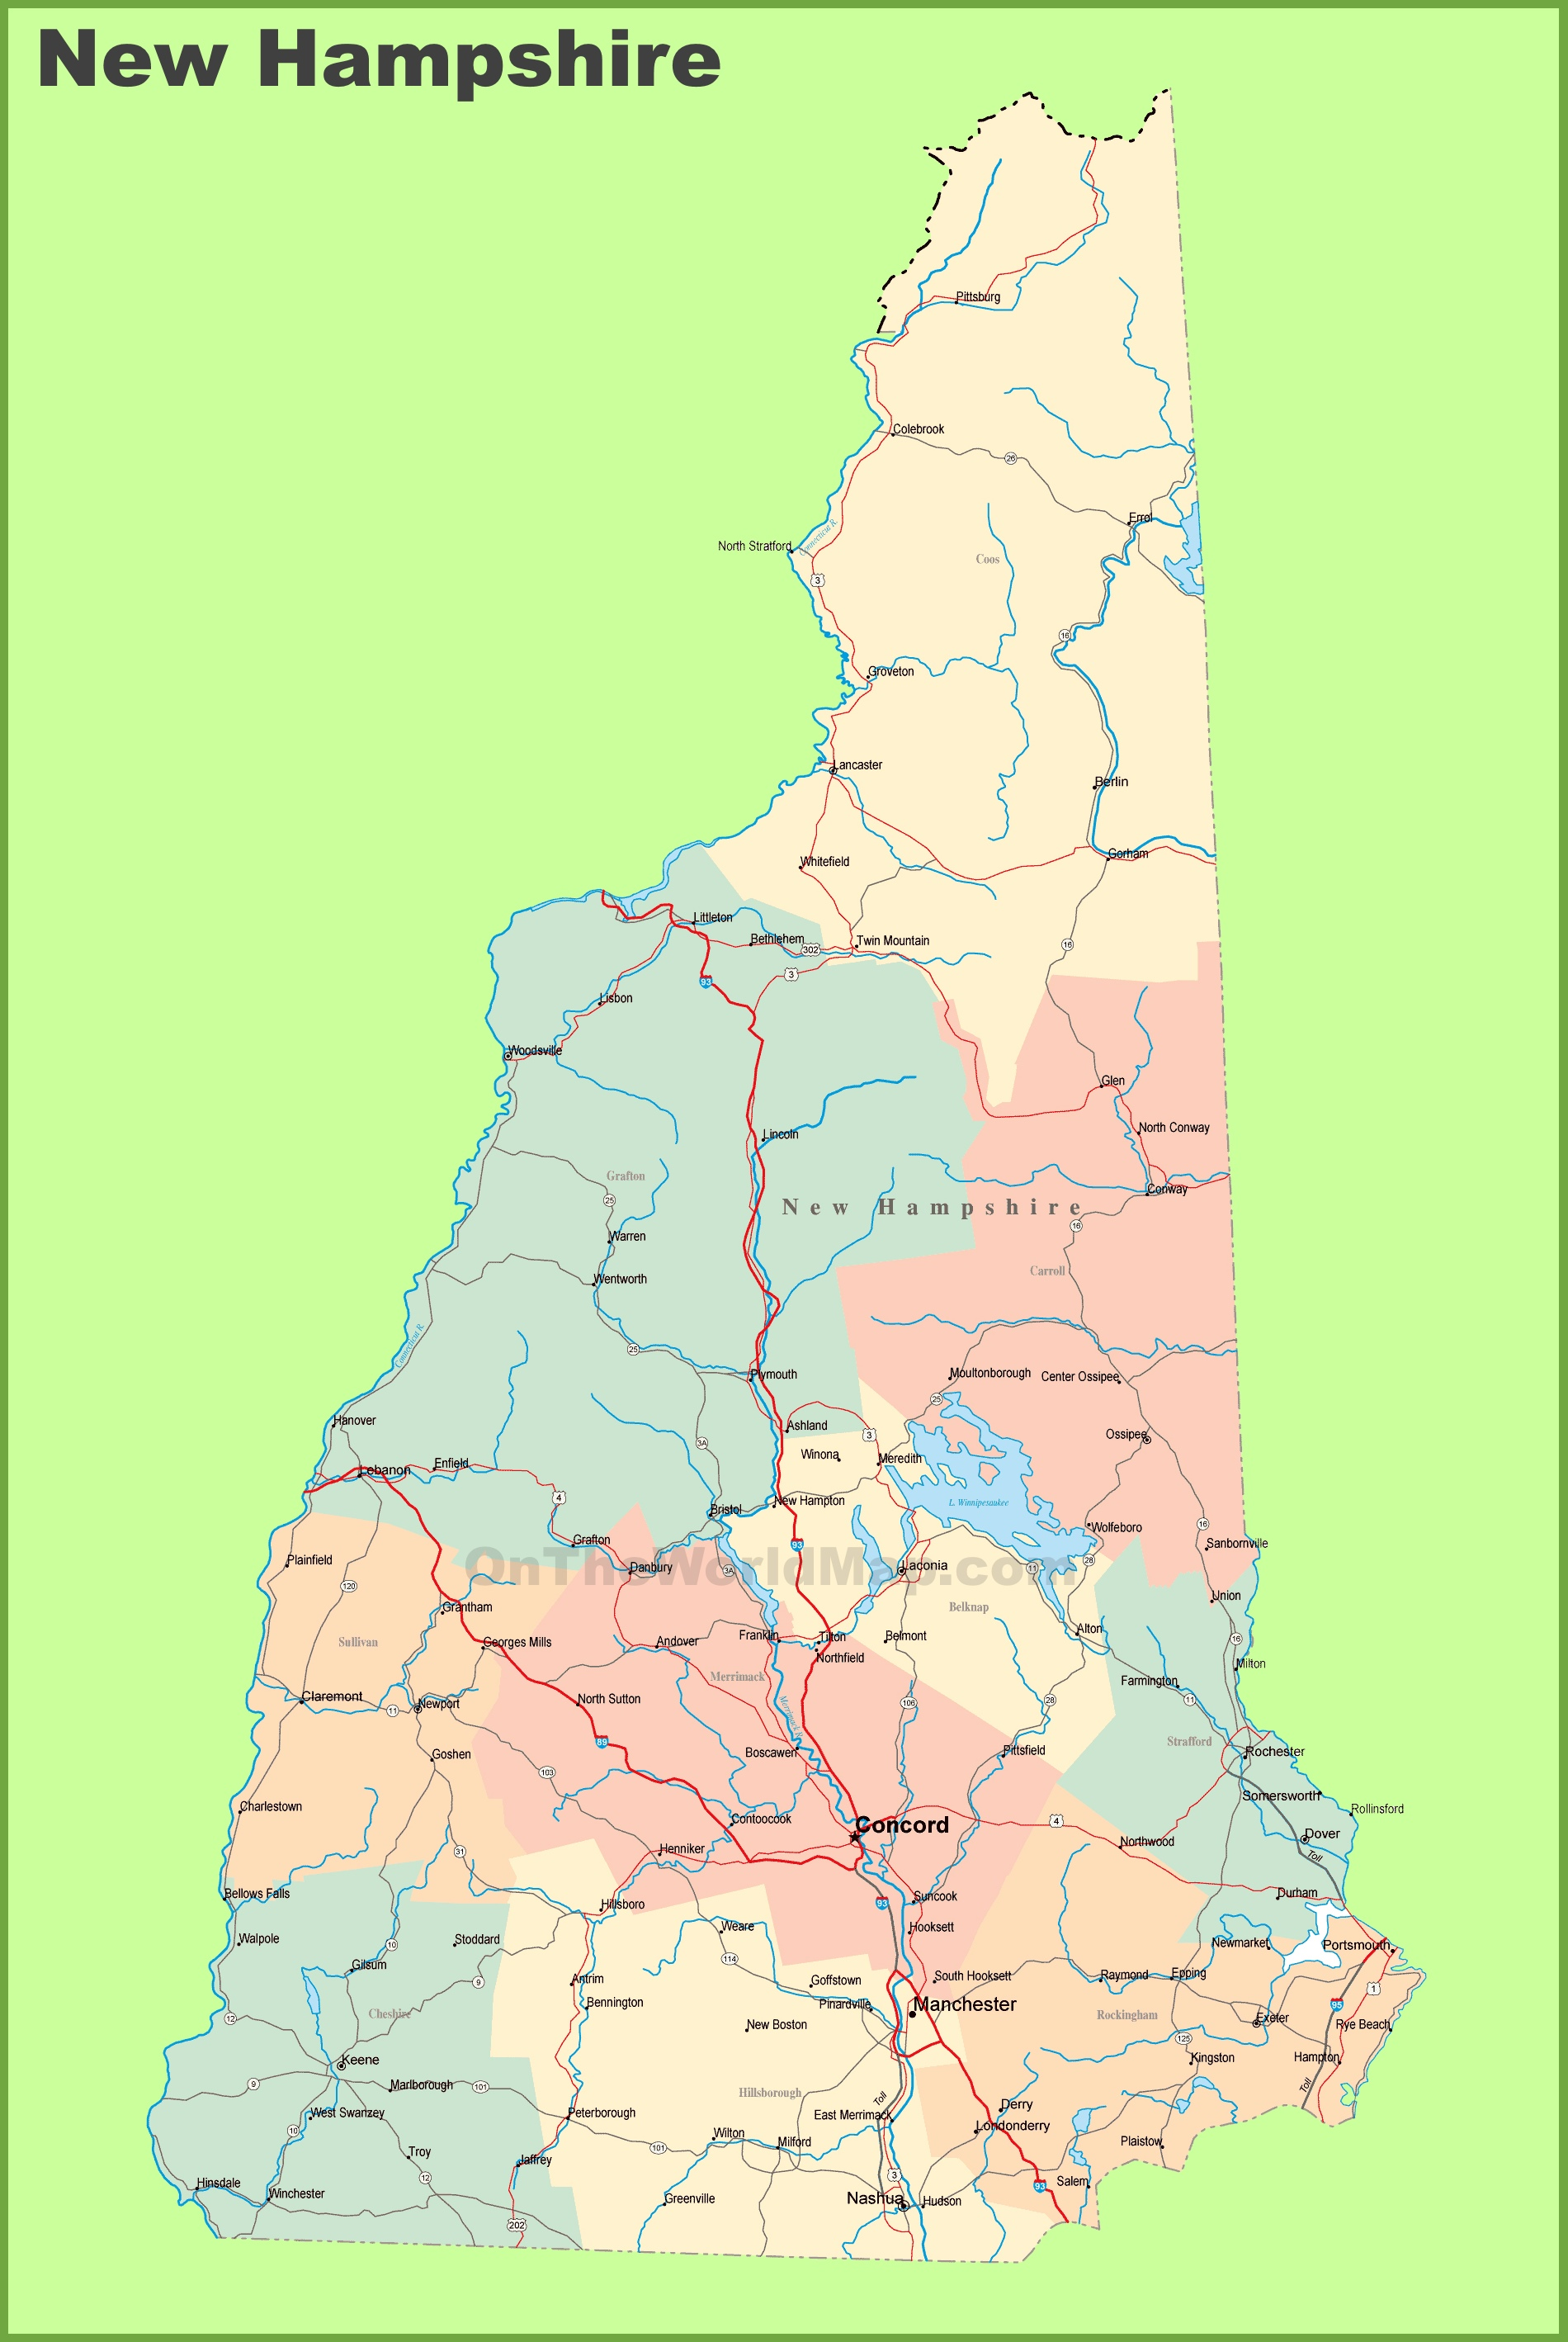 Road map of New Hampshire with cities